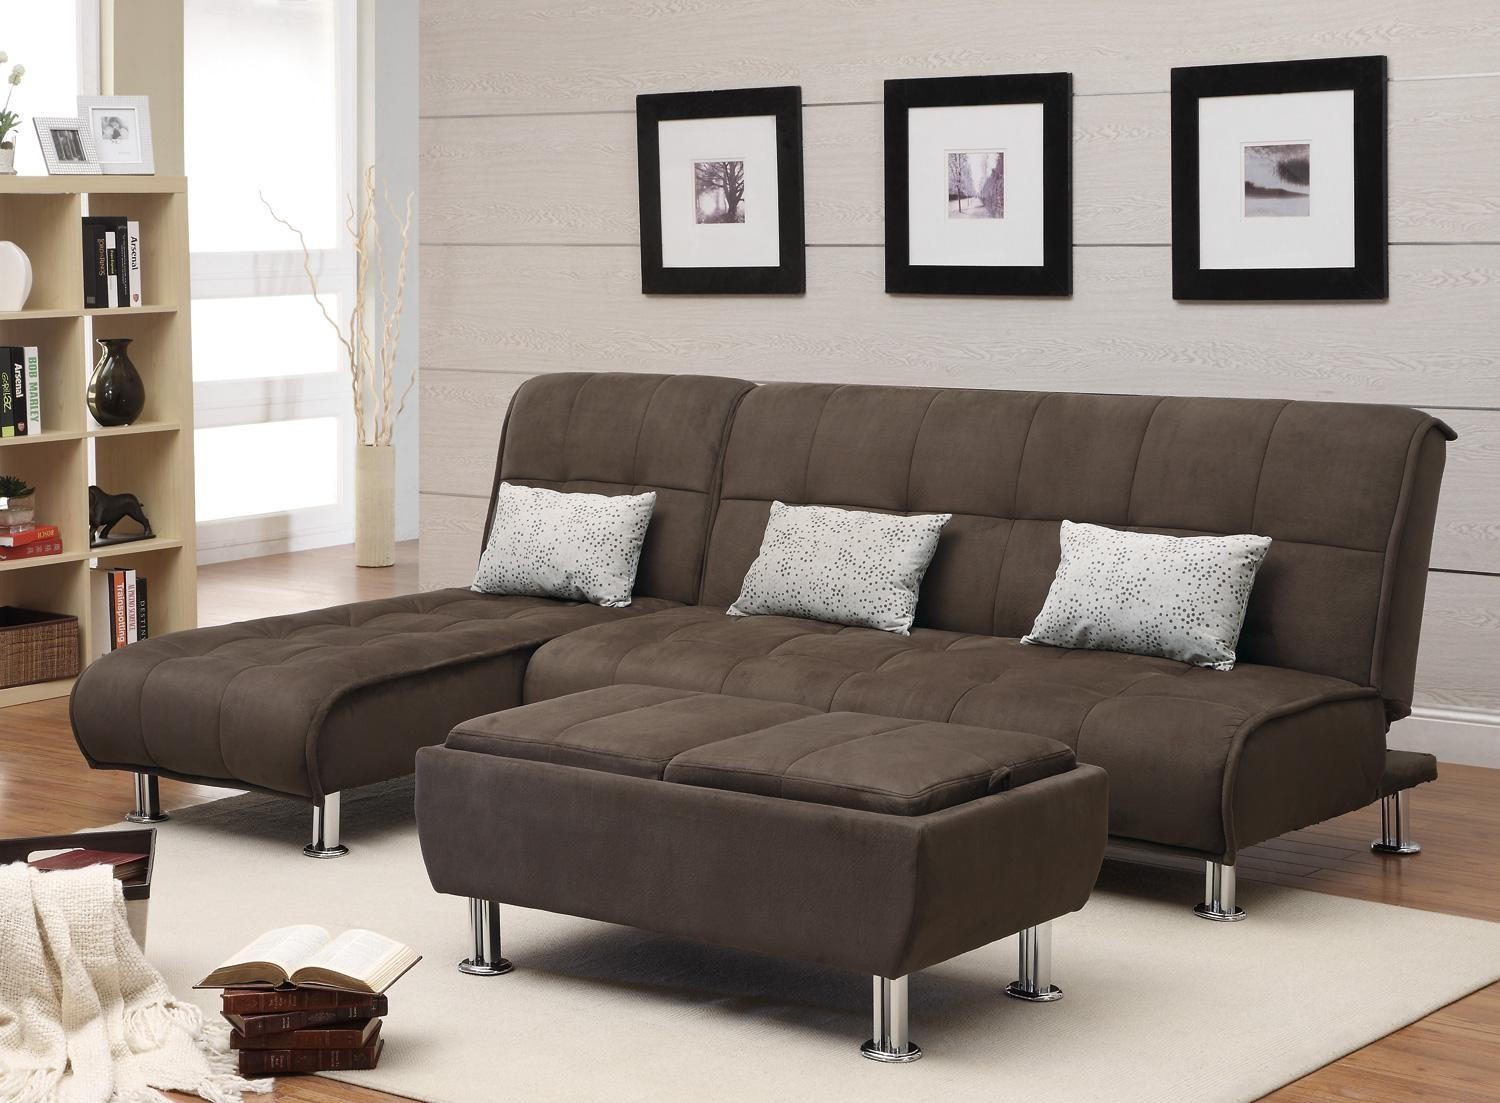 Most comfortable sectional sofa - Most Comfortable Sofas With Contemporary Design Of Dark Brown Color